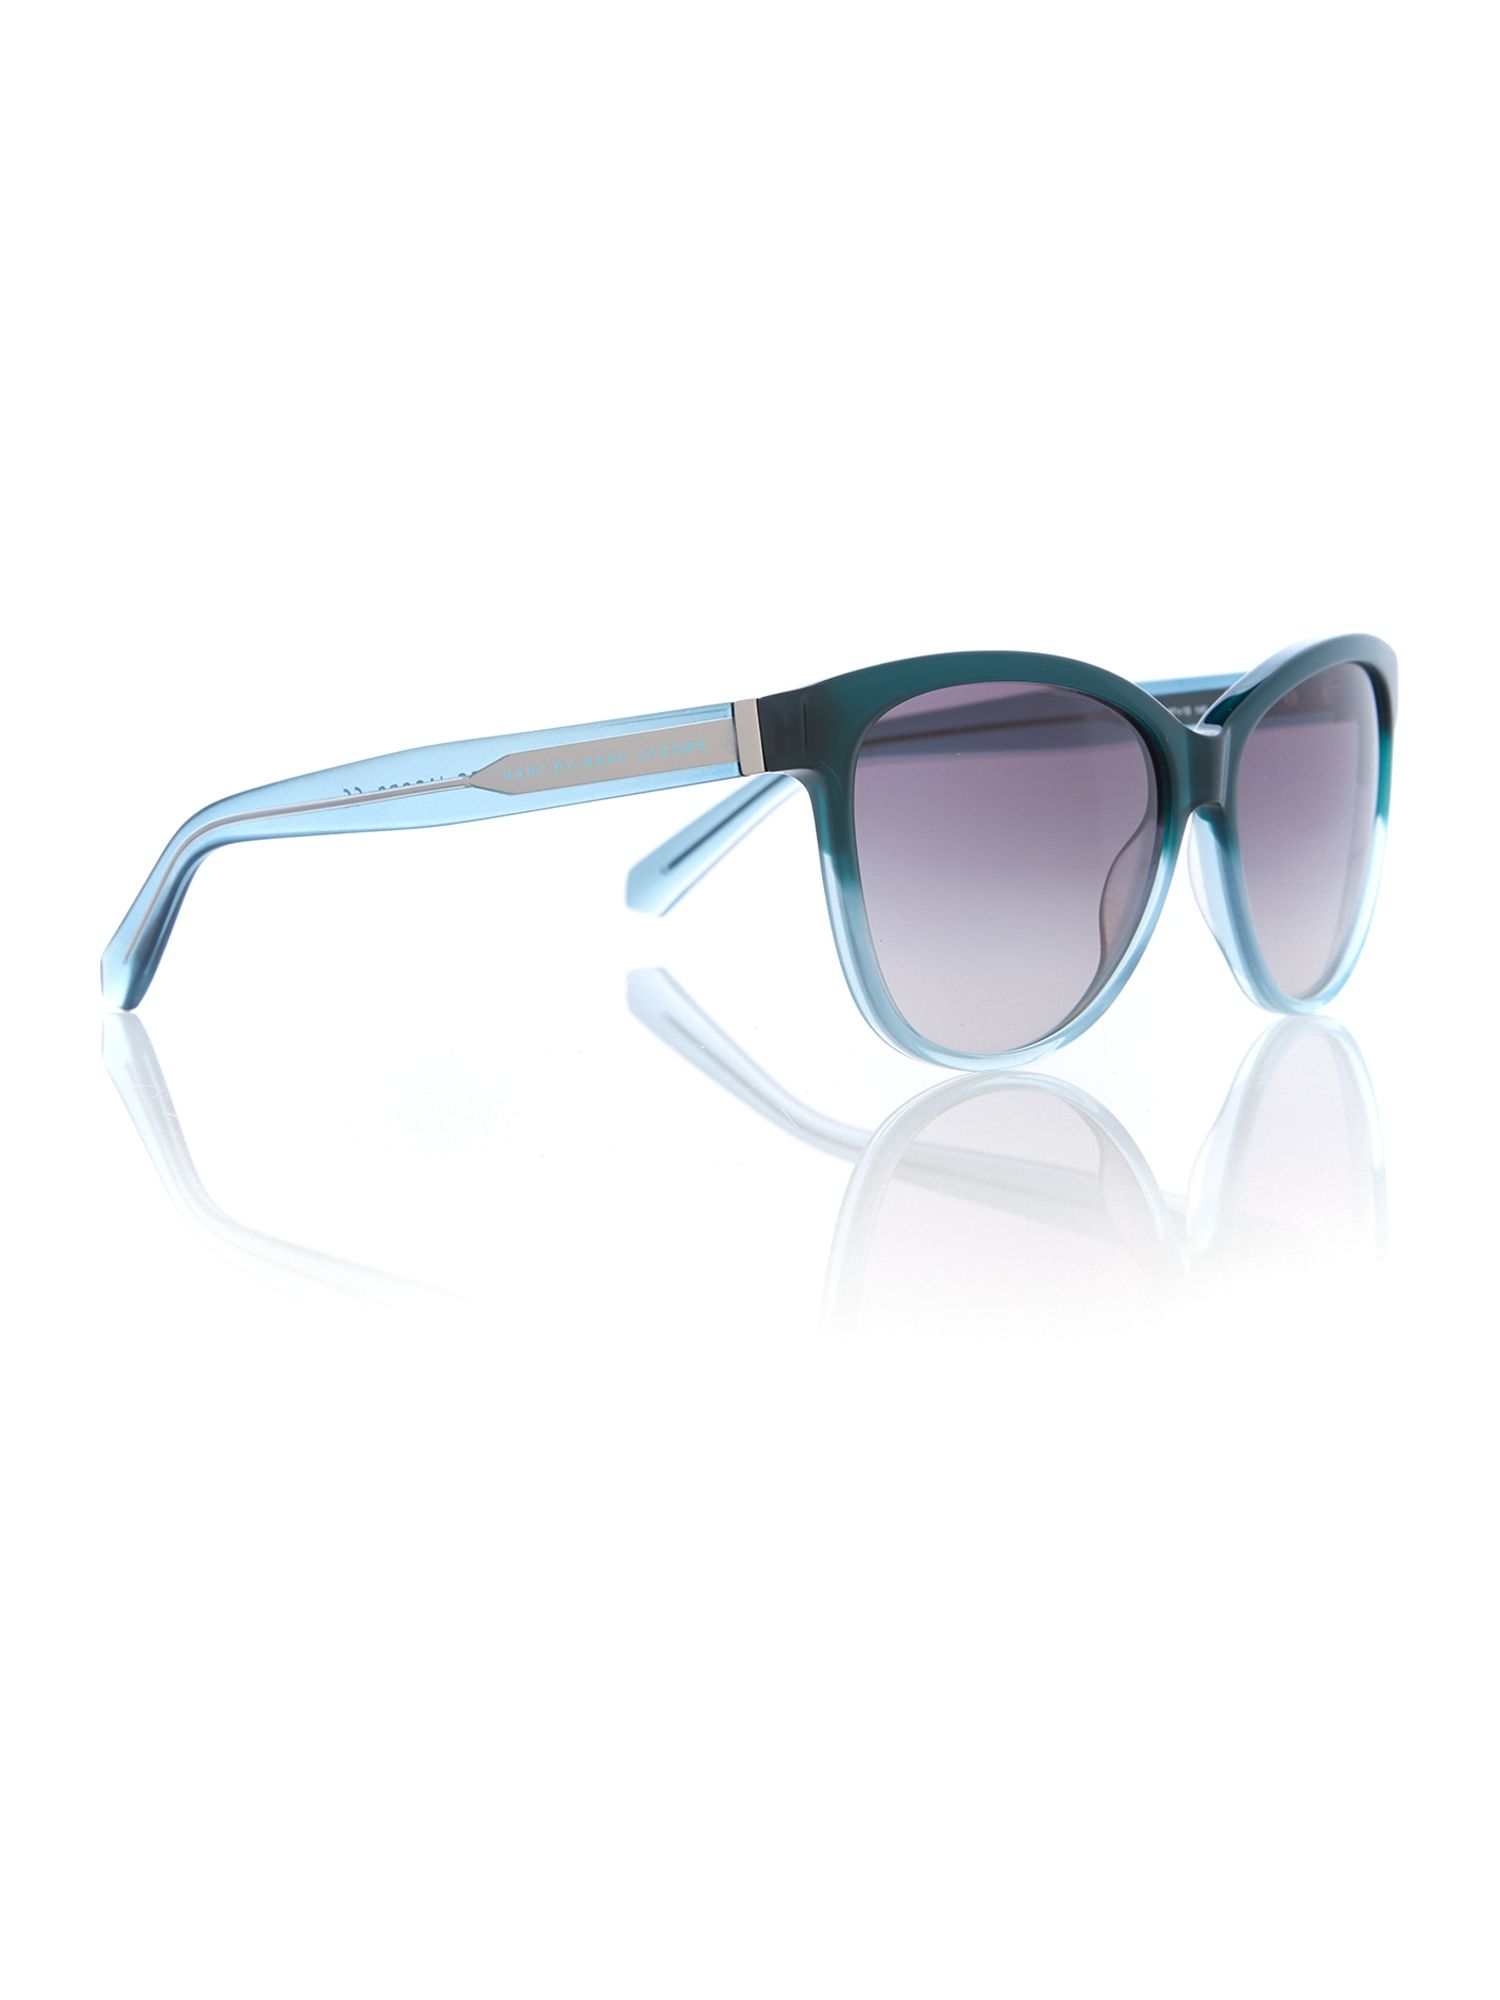 Women grey oval sunglasses